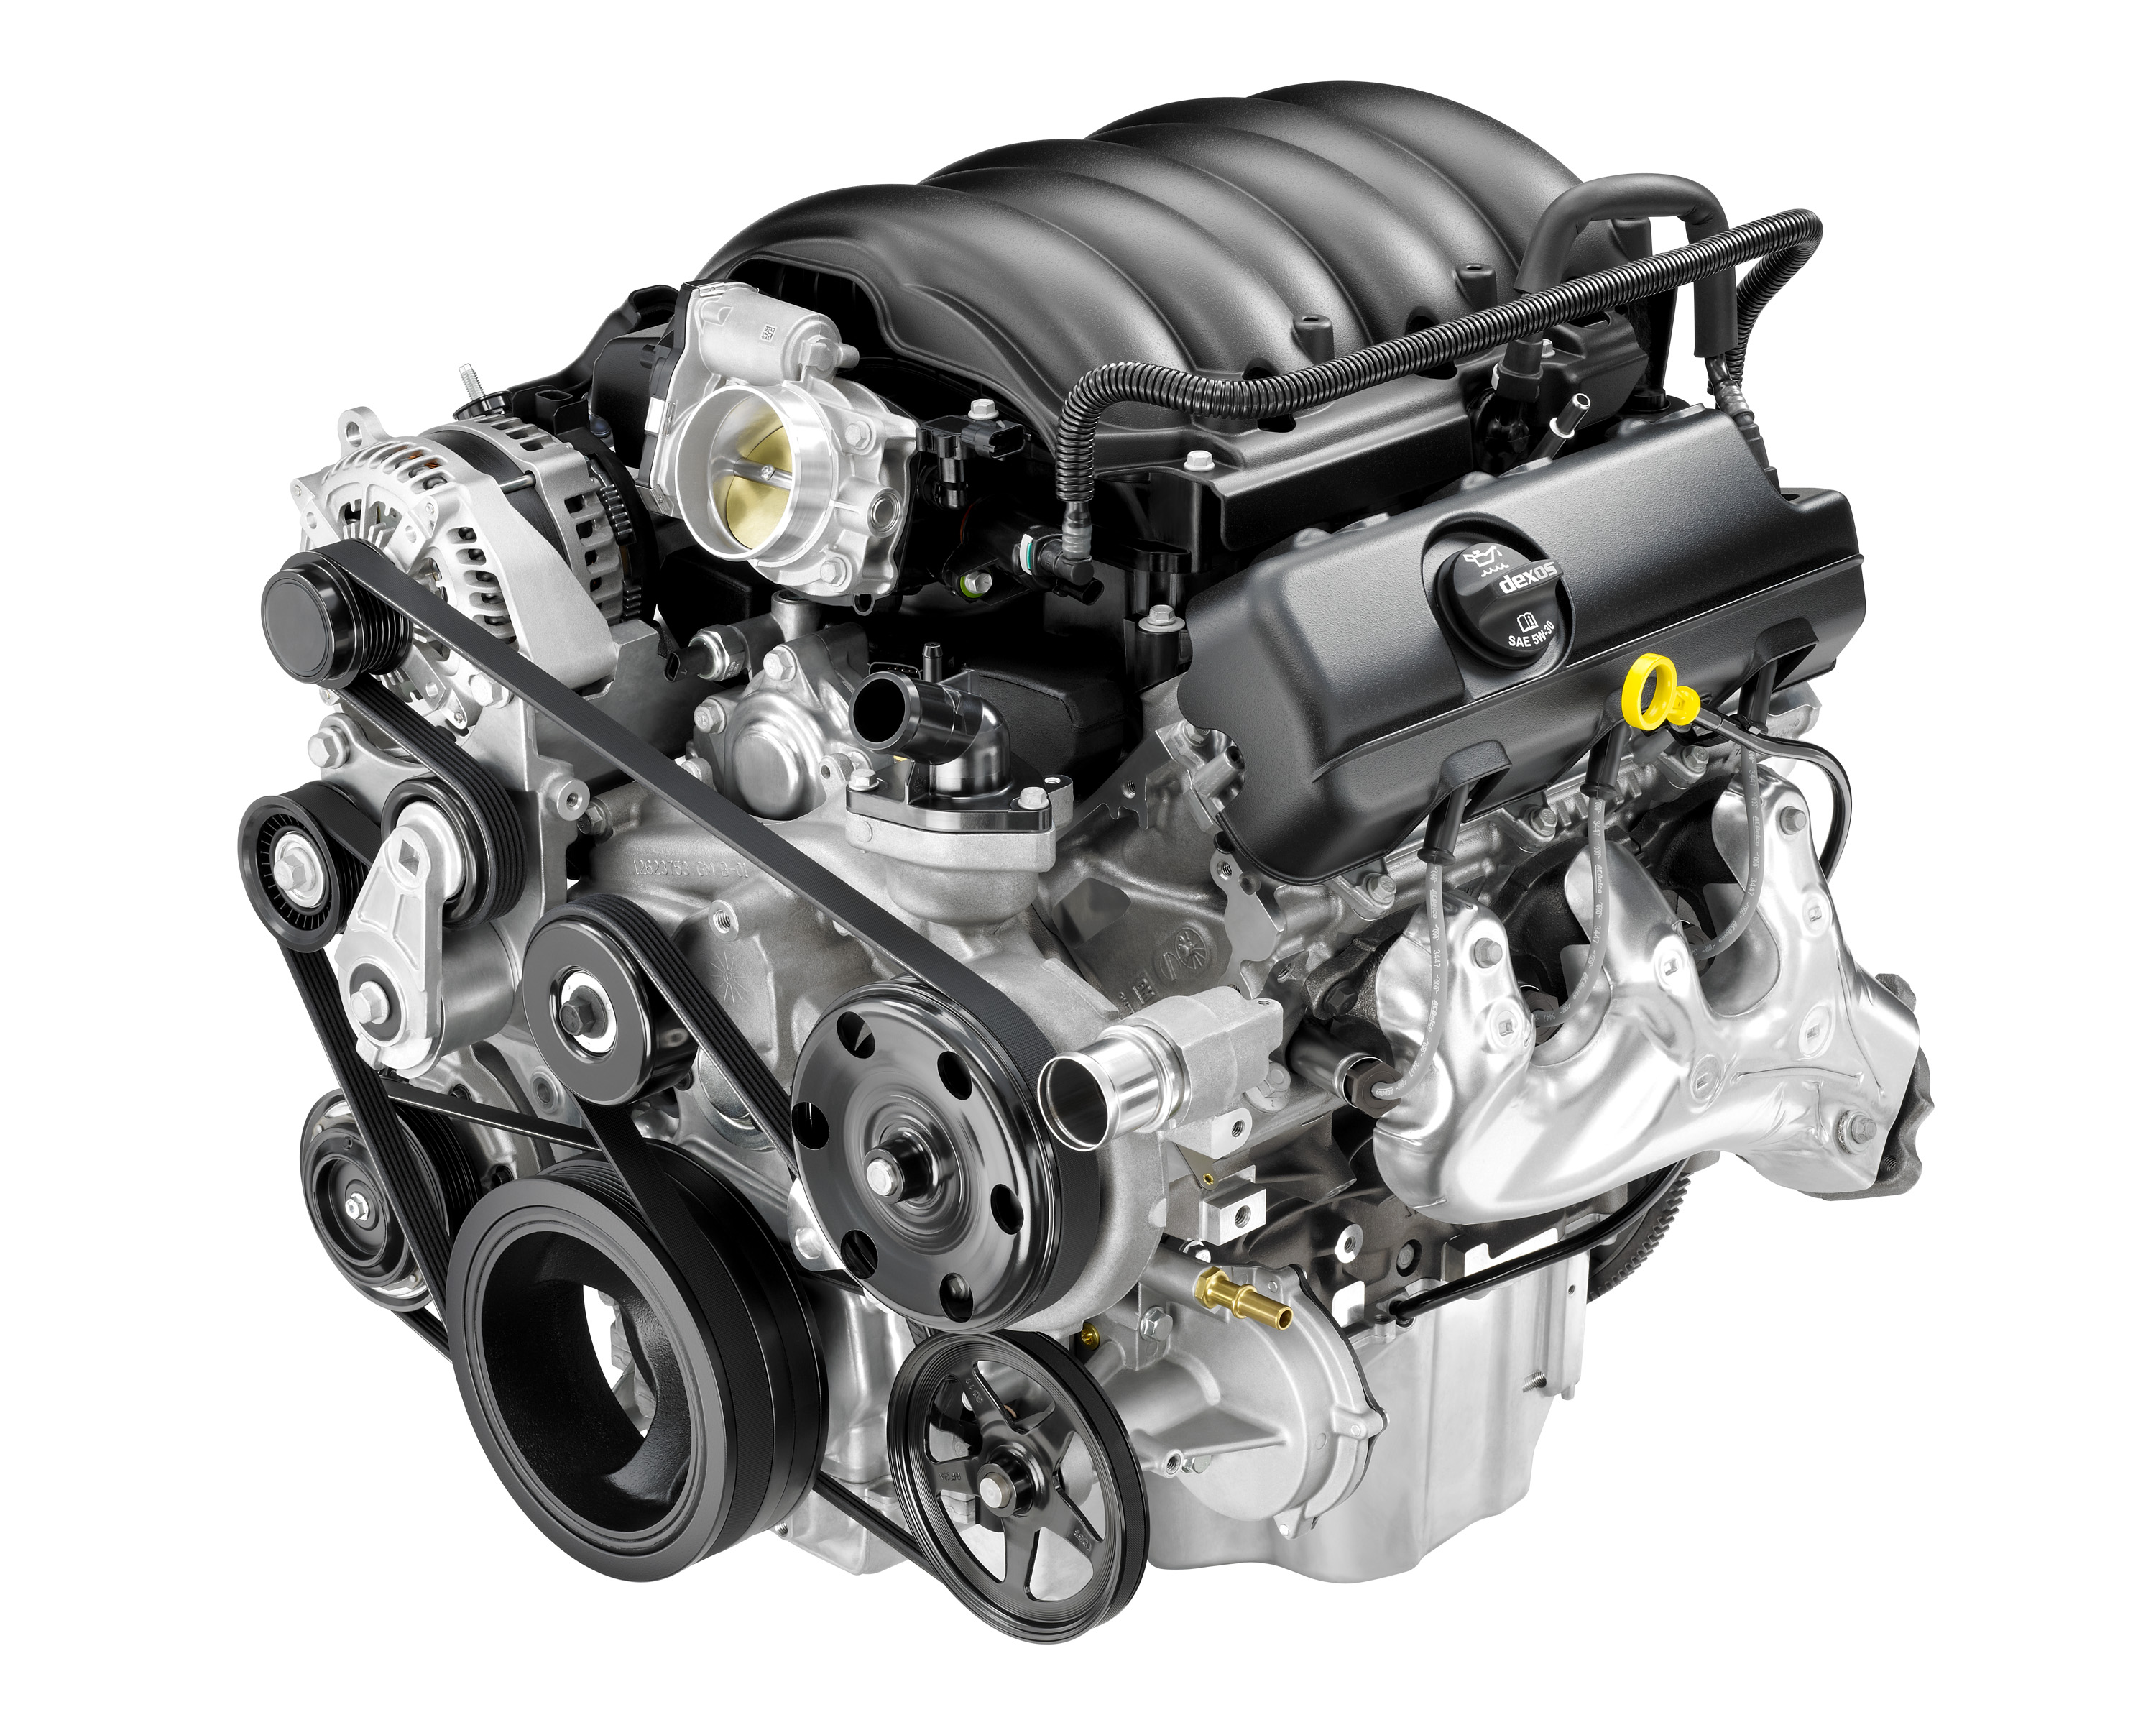 2014 chevy impala\u0027s 2 5l engine delivers quiet power, fuel 2001 Chevy Tracker 2 0 Engine Diagram the ecotec 2 5l i 4 engine for the 2014 chevrolet impala features intake valve lift control technology (ivlc) the engine also uses direct injection and